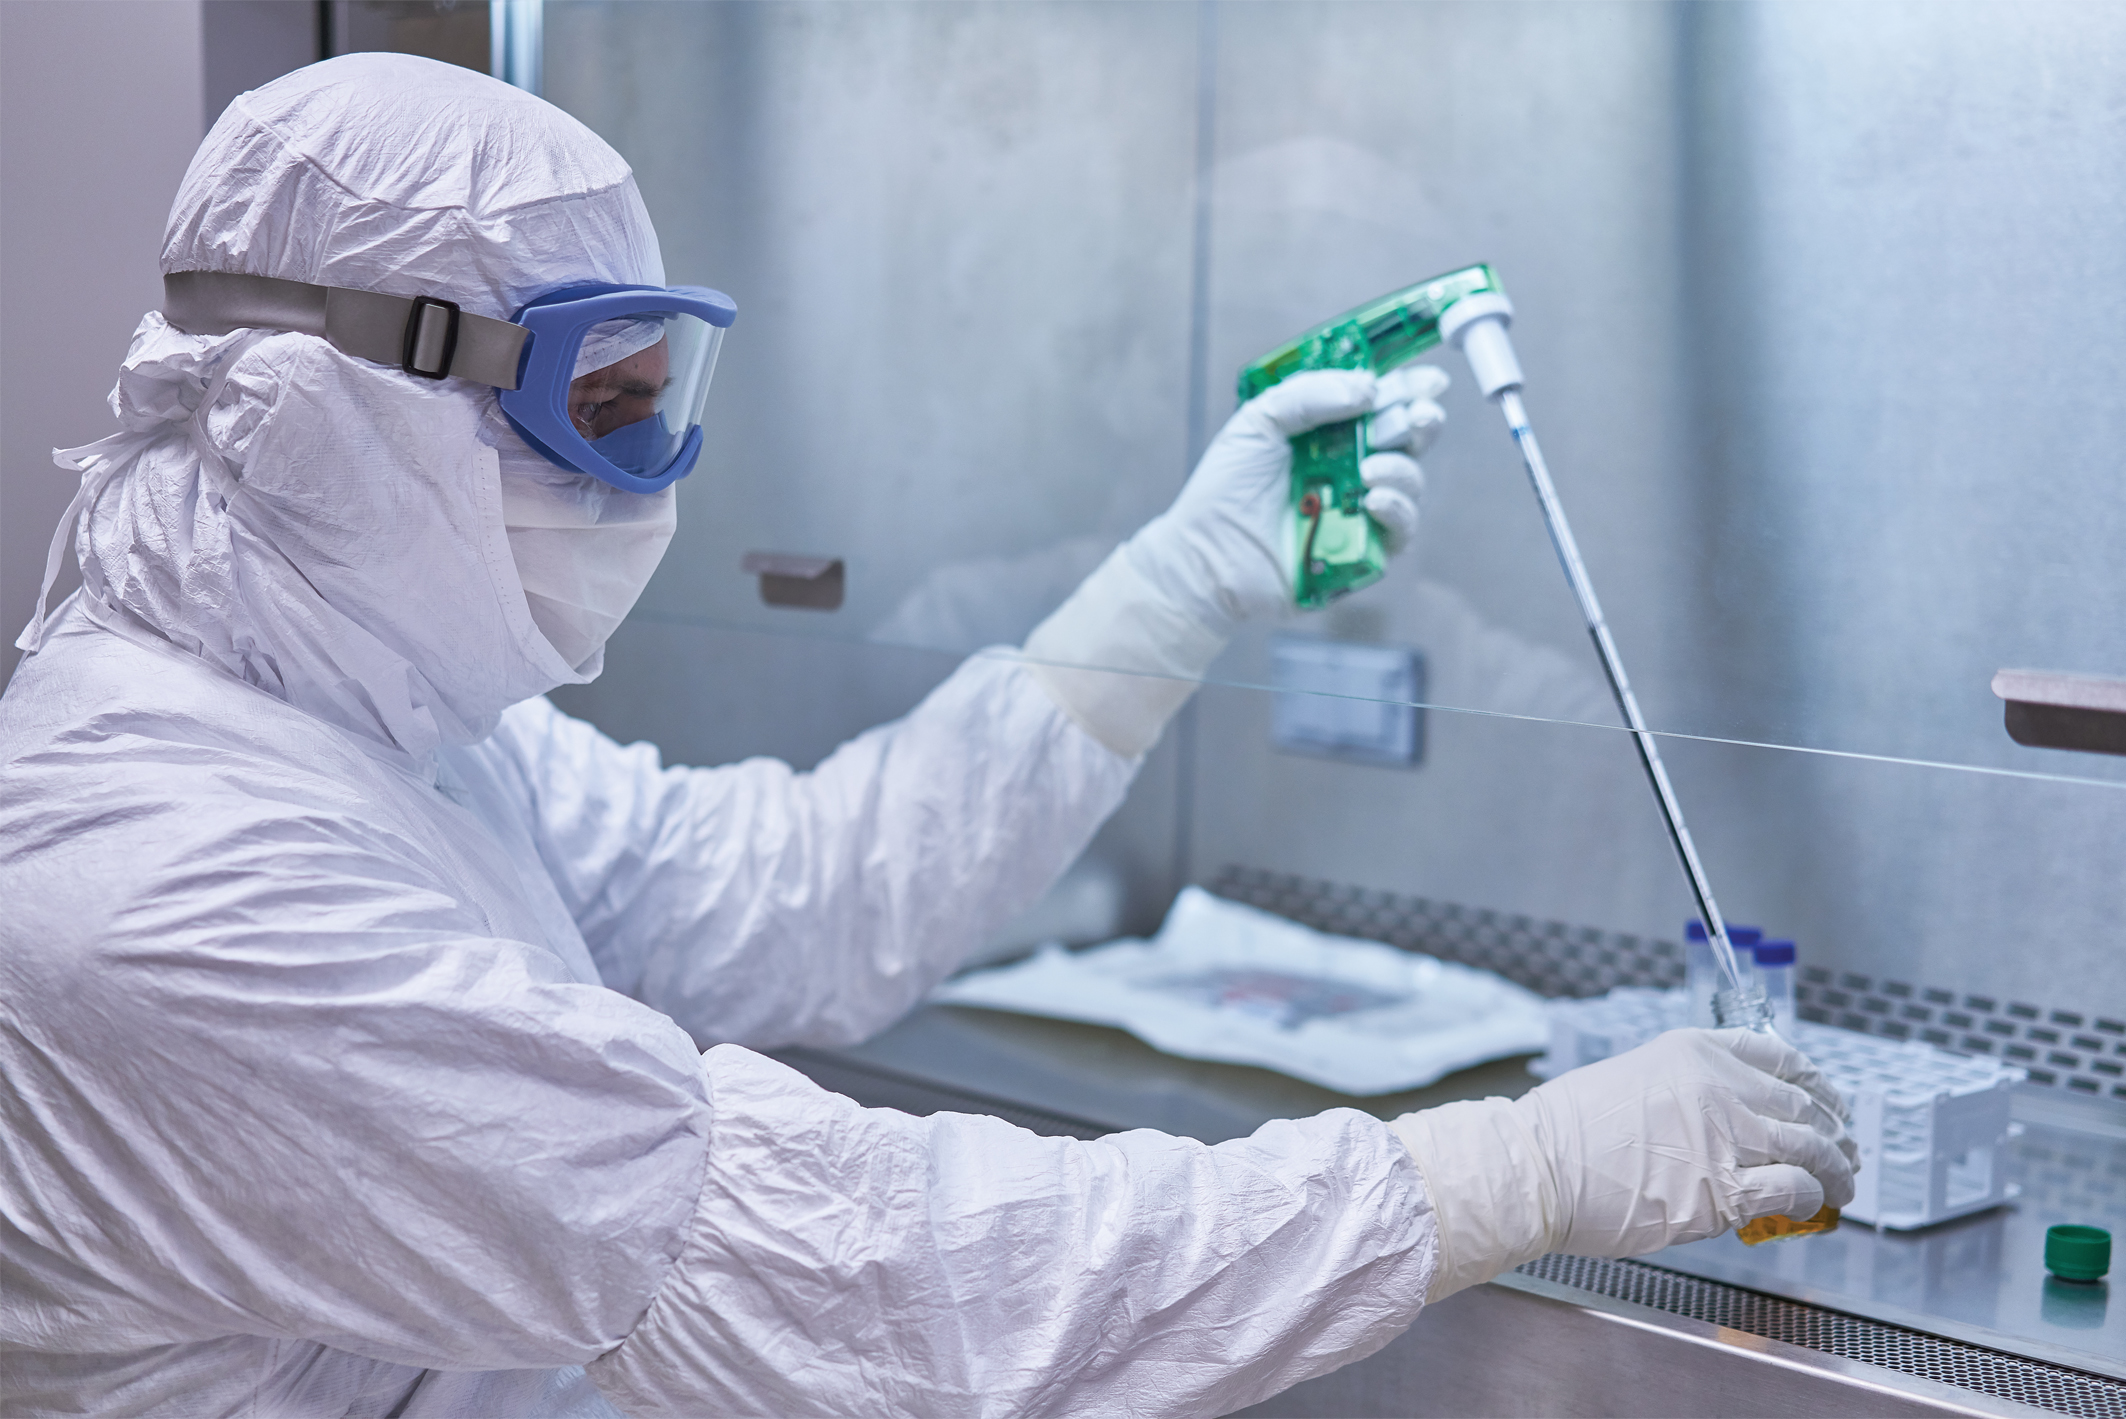 Deterioration of reusable cleanroom garments could compromise cleanroom environments, says new study